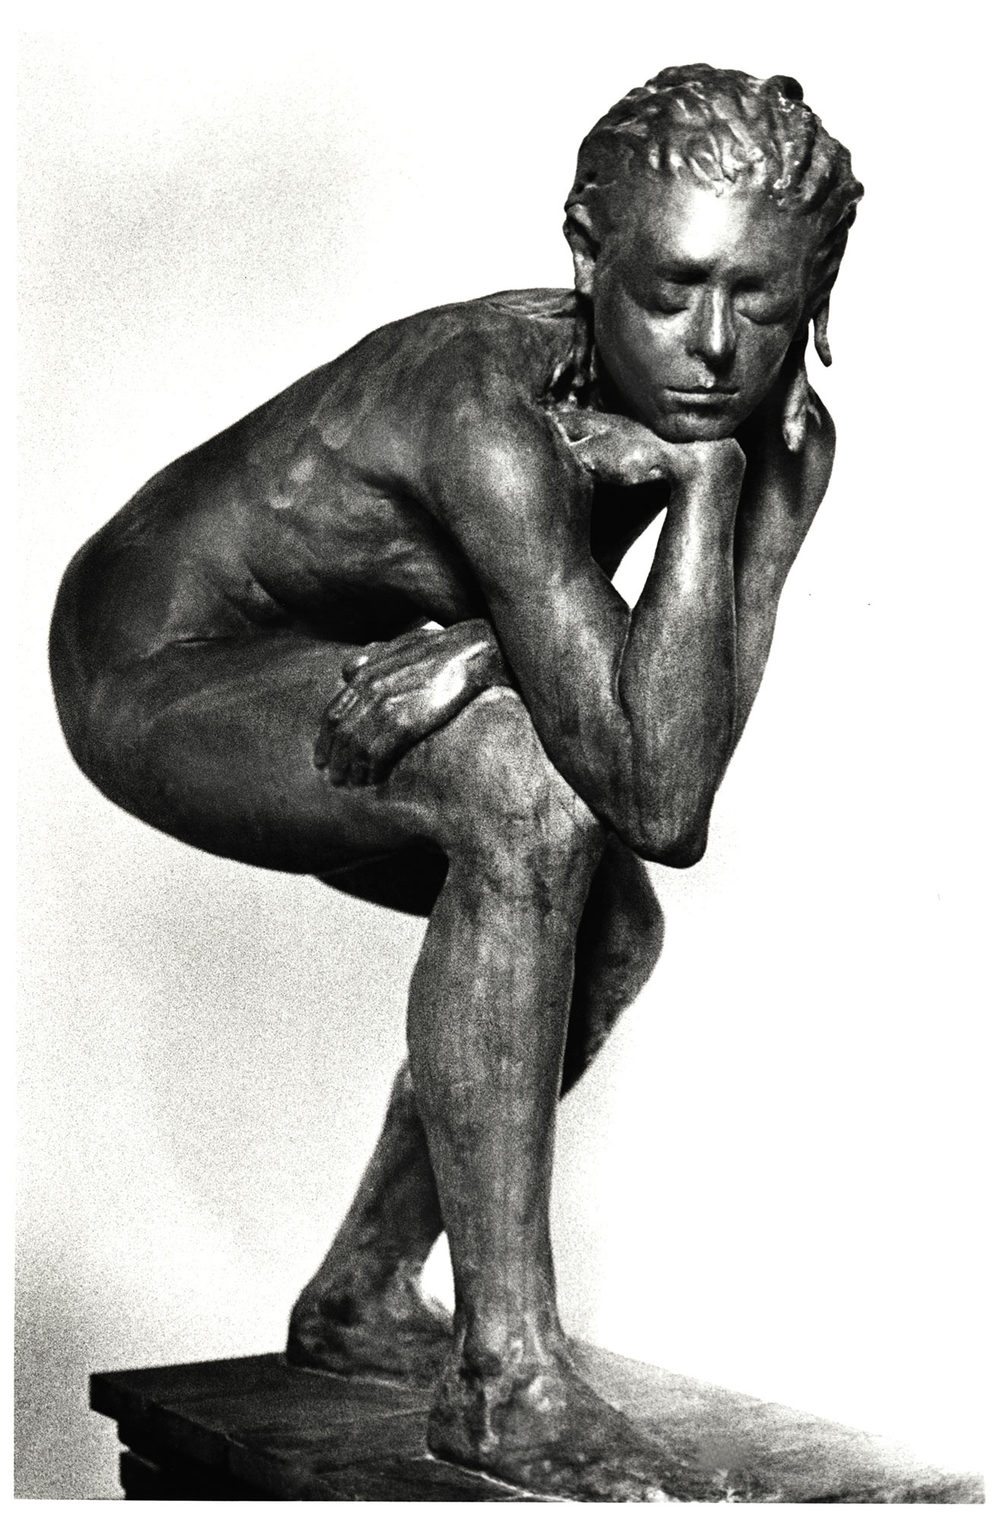 Swimmer at Rest, 1995.